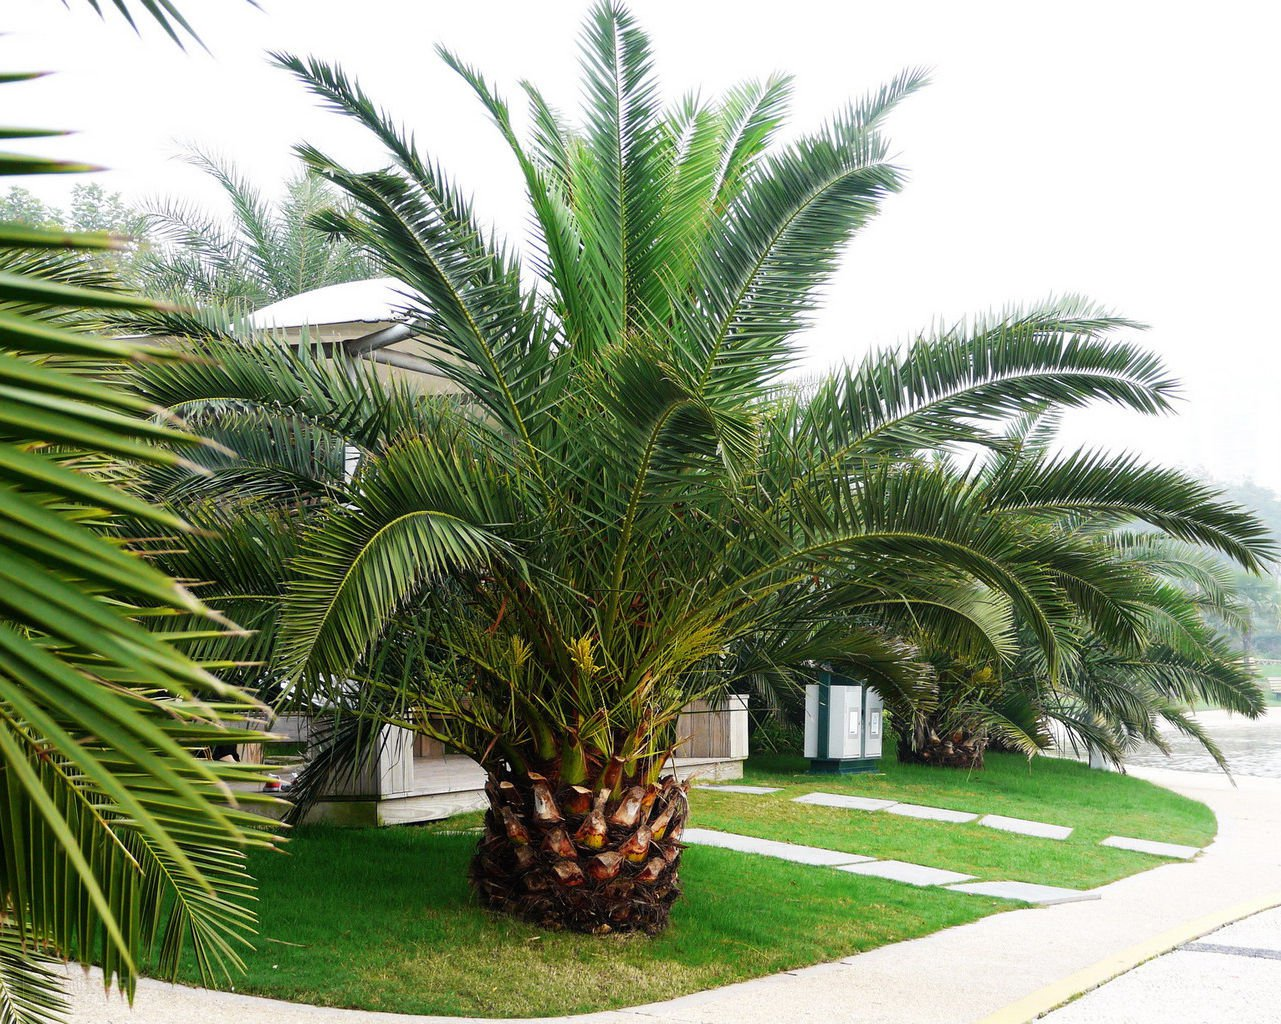 Pineapple Palm 5 seeds Phoenix canariensis  Ornamental tree / bonsai *SHIPPING FROM US* CombSH L42